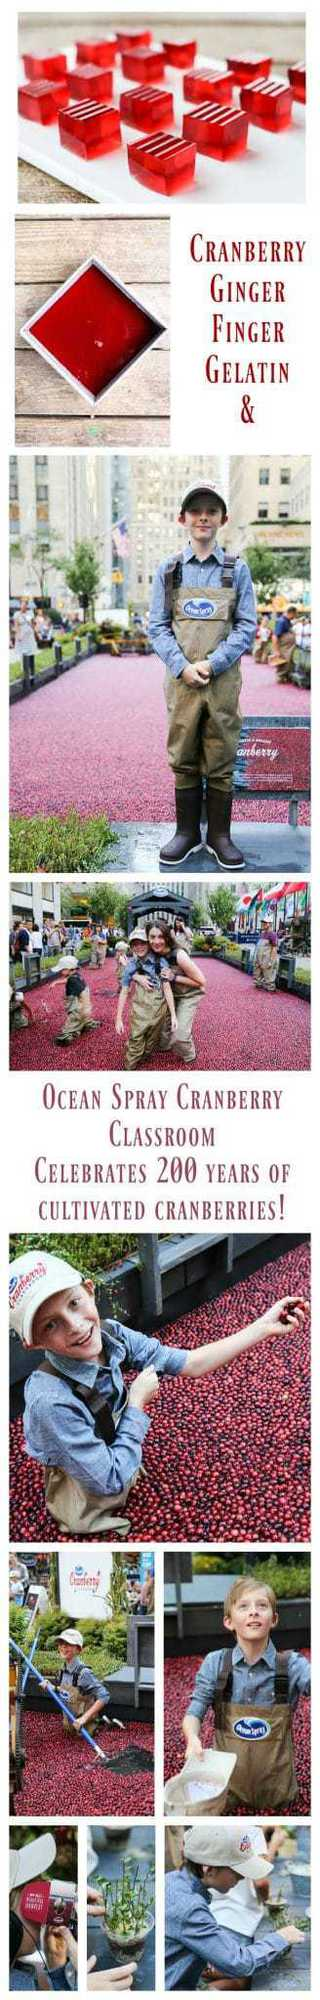 Cranberry Ginger Finger Gelatin and Ocean Spray Cranberry Classroom